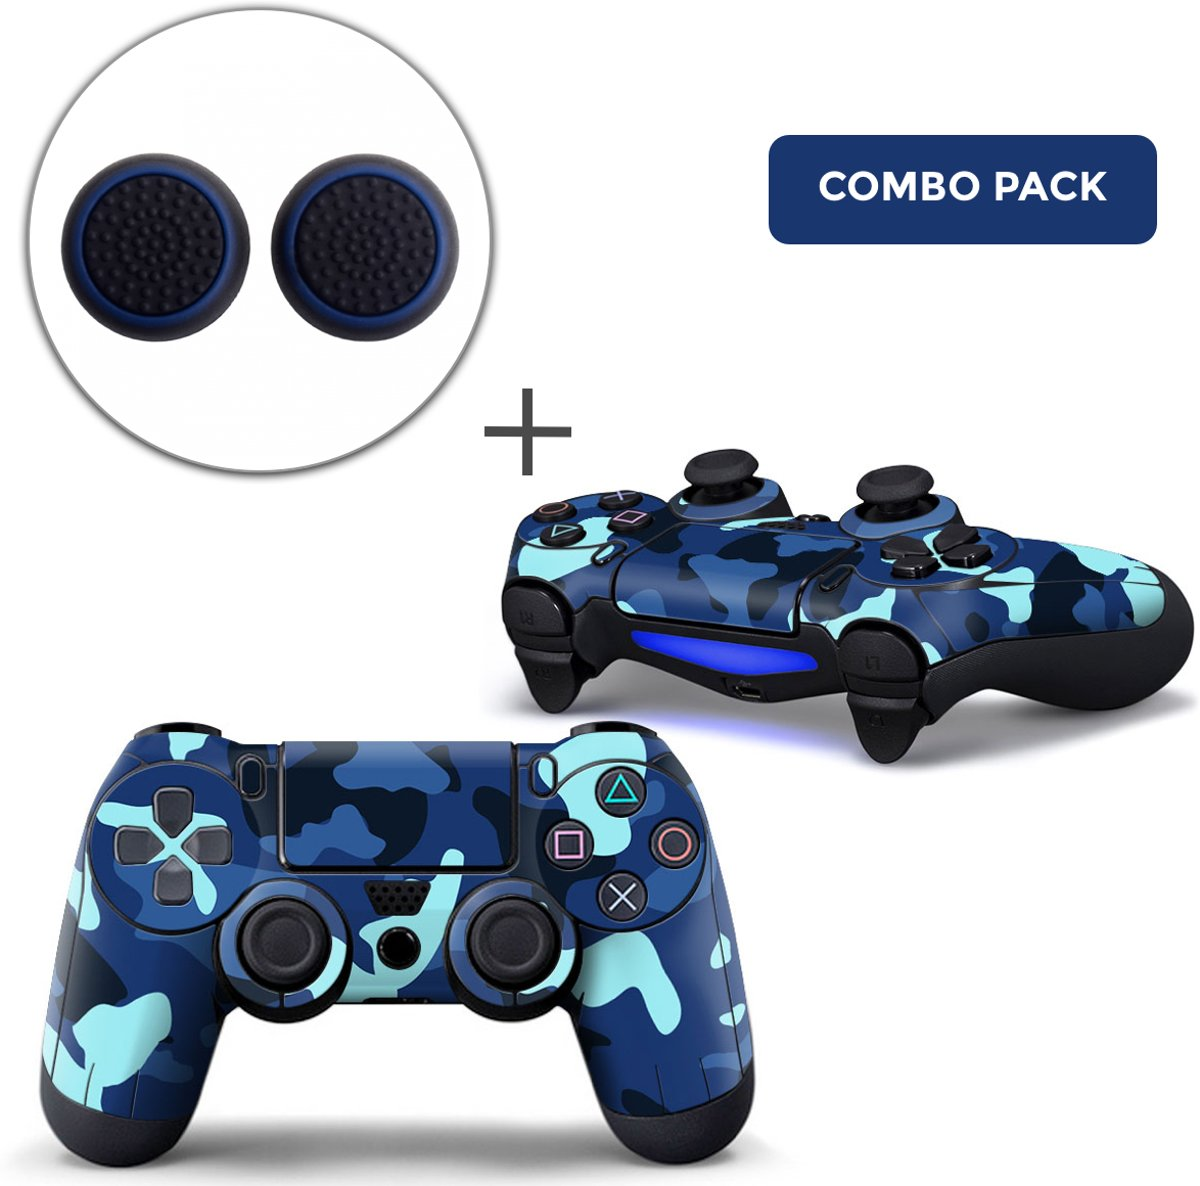 Army Camo / Blauw Zwart Combo Pack - PS4 Controller Skins PlayStation Stickers + Thumb Grips